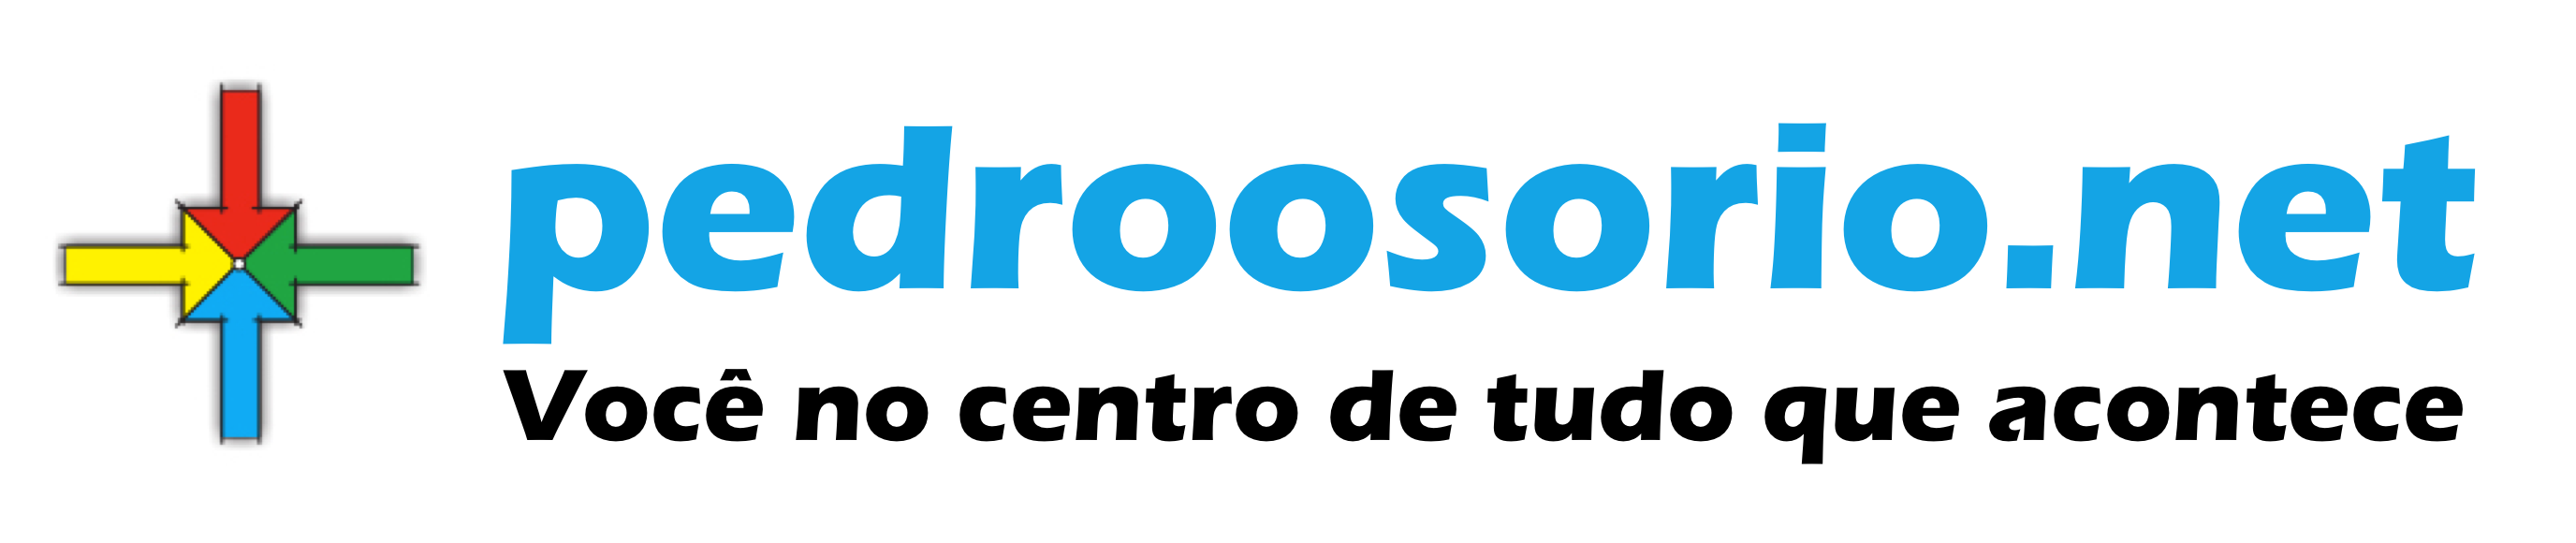 Header pedroosorio.net@2x